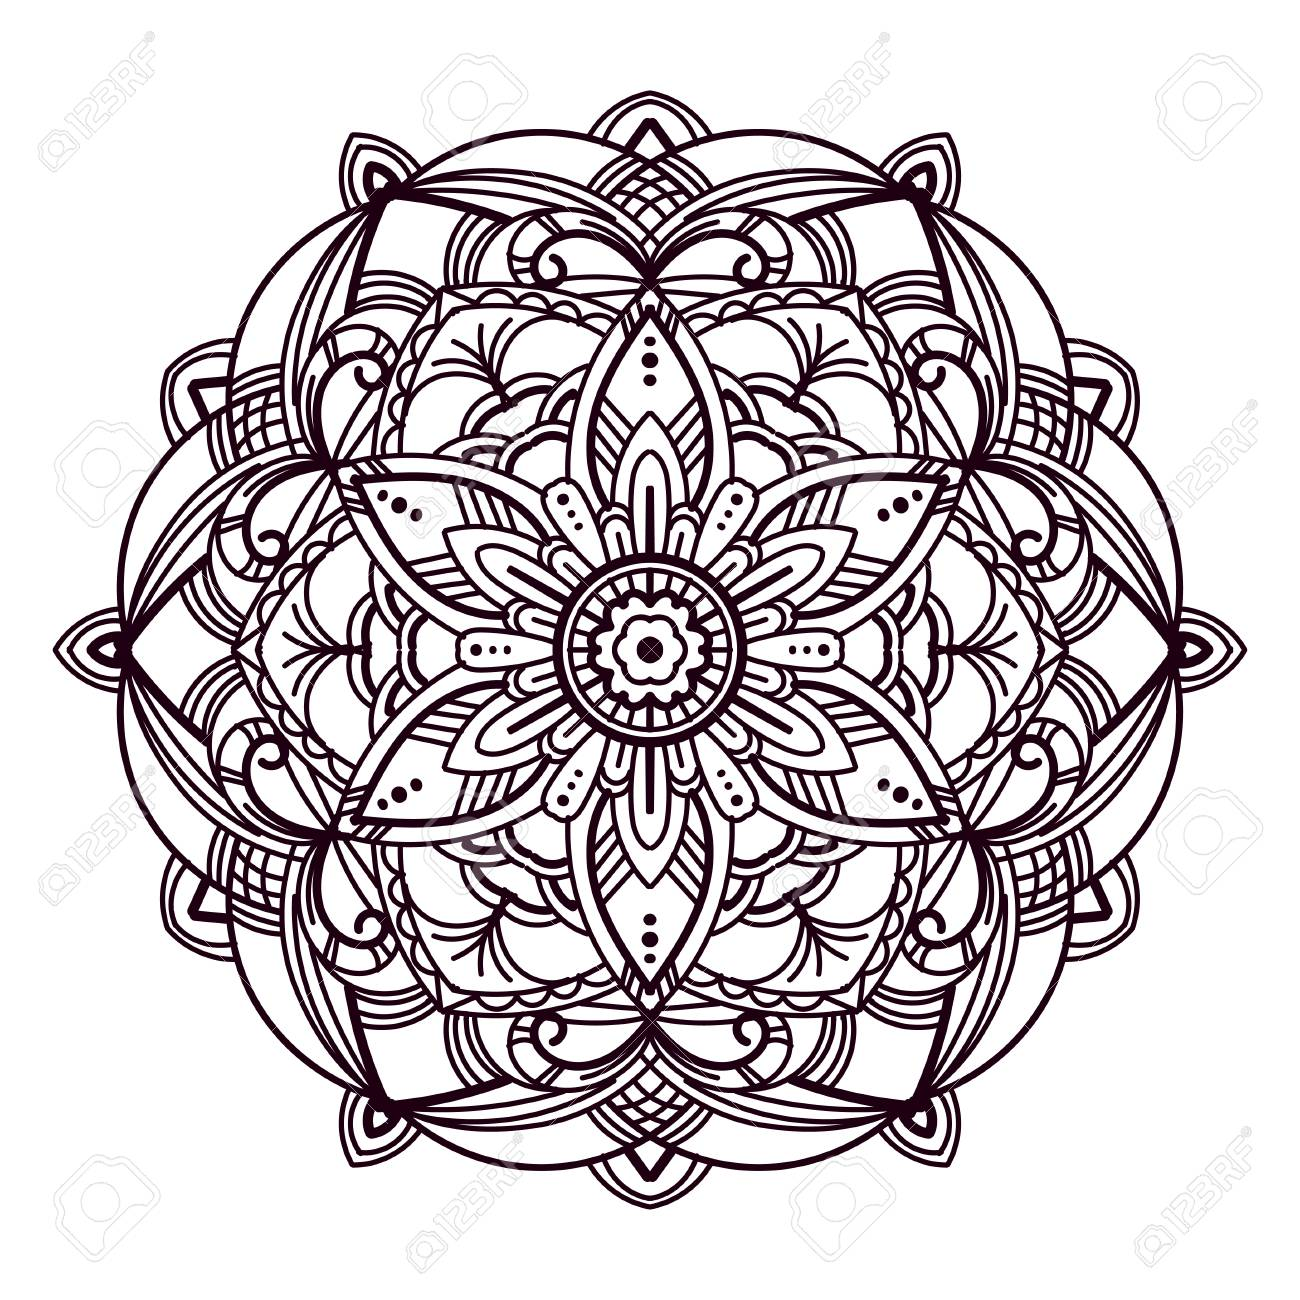 Mandala Hand Drawn Vector Illustration For Coloring Pages